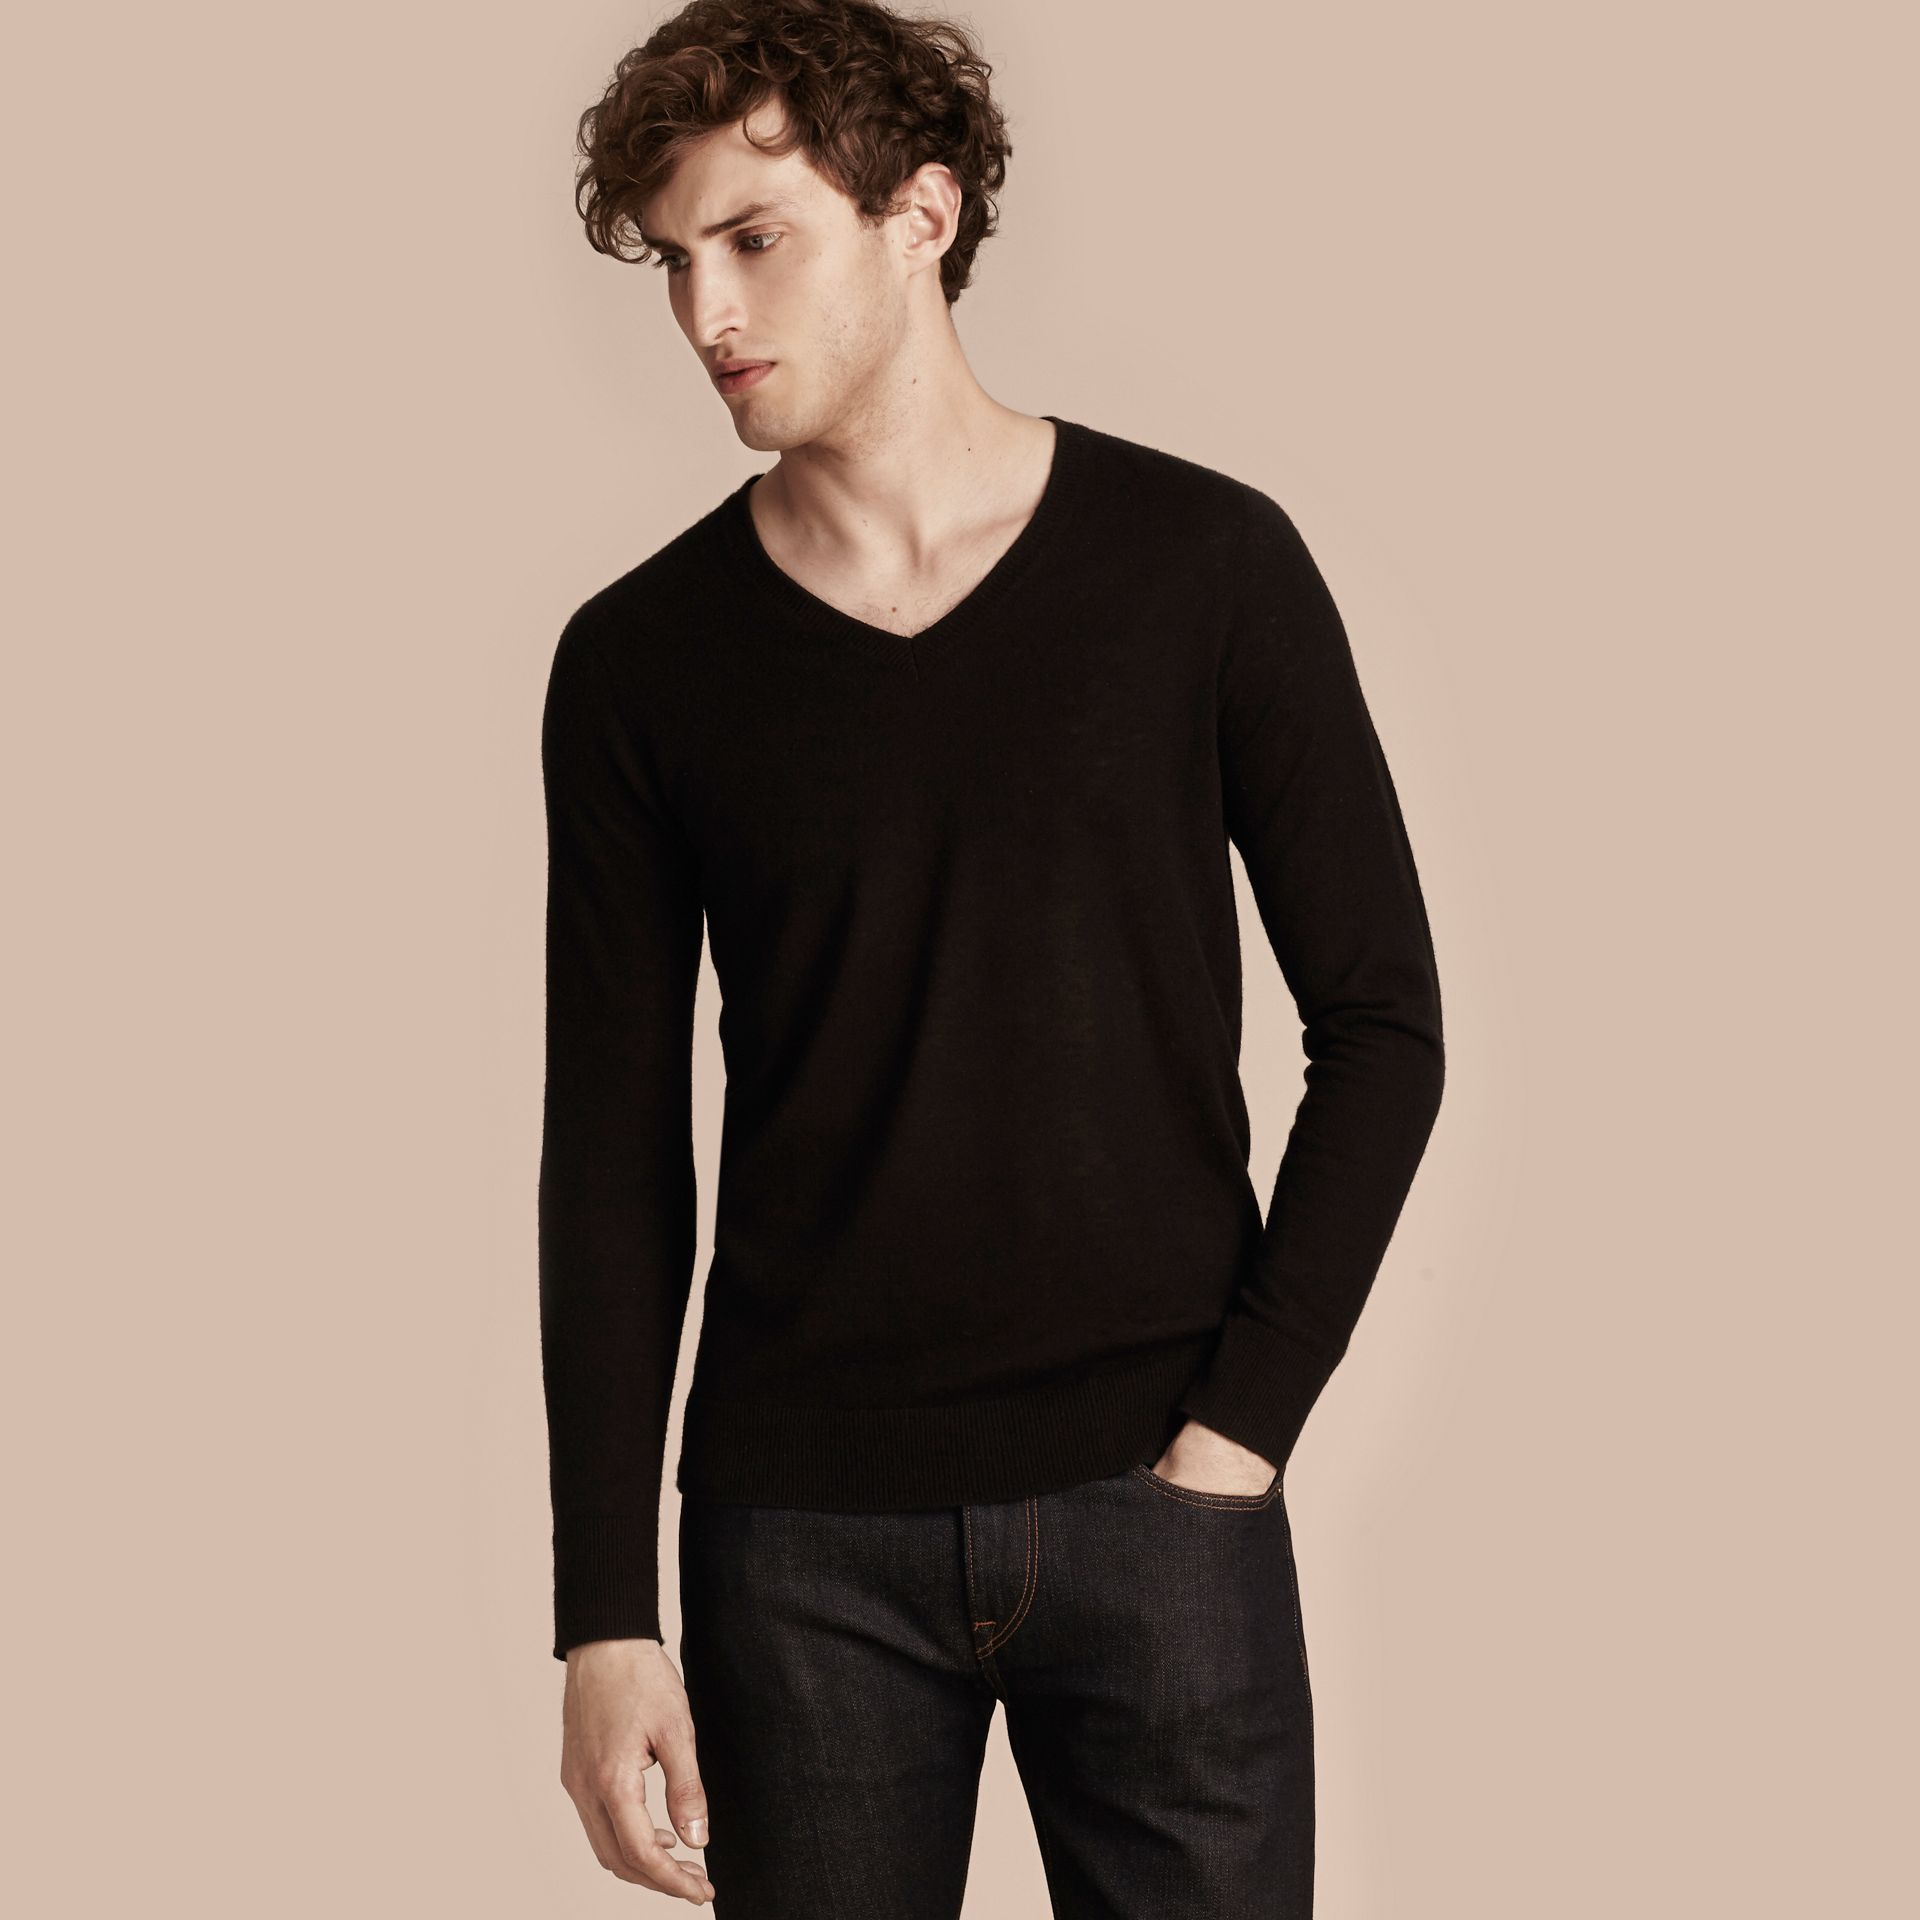 Black Cashmere V-neck Sweater Black - gallery image 6